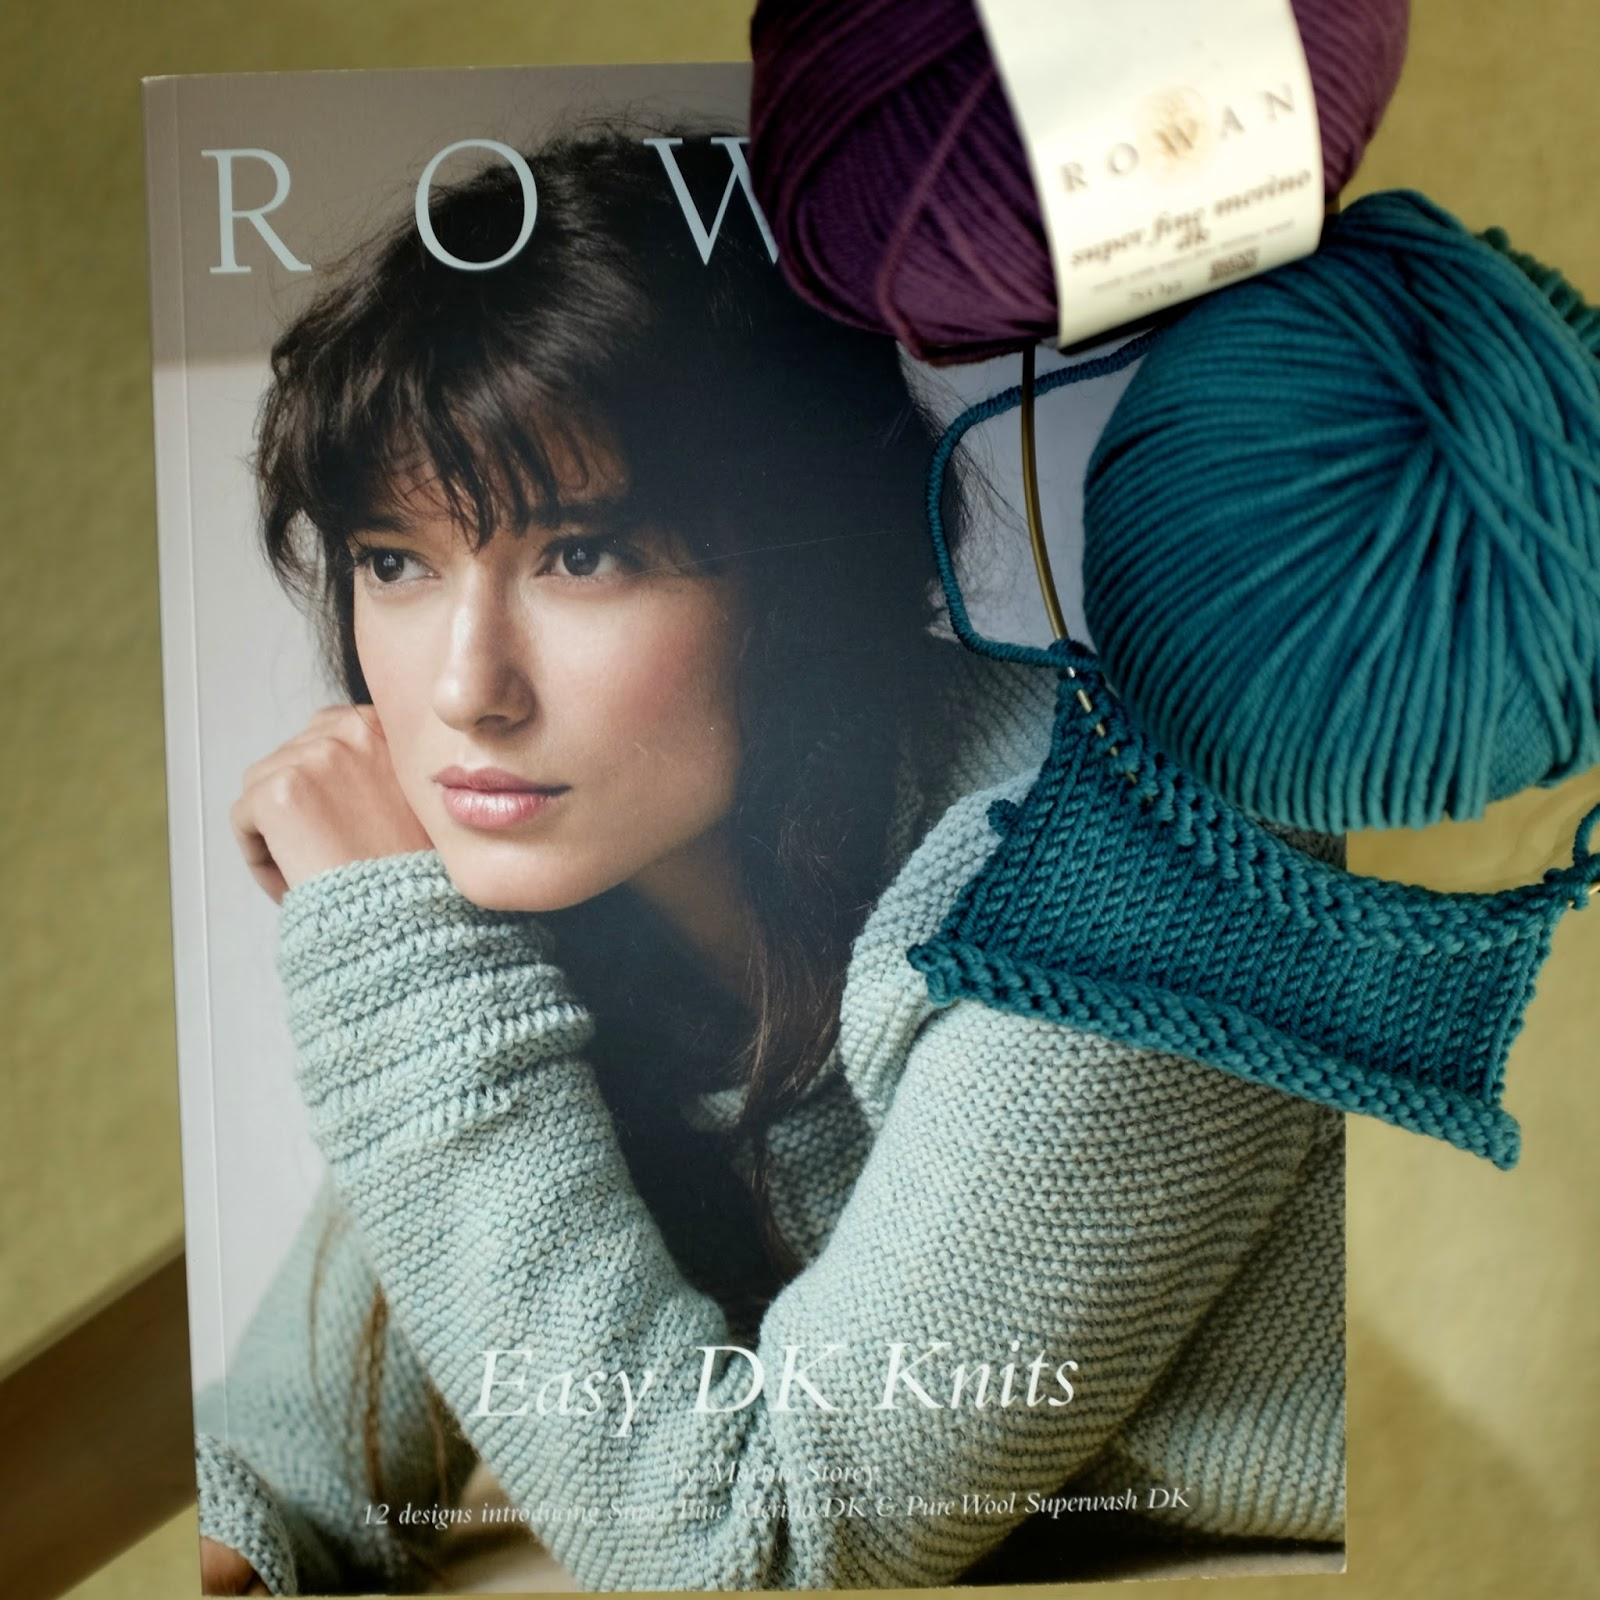 bc770c434bd9 This design collection introduces not 1 but 2 new DK yarns to the Rowan  yarn collection!